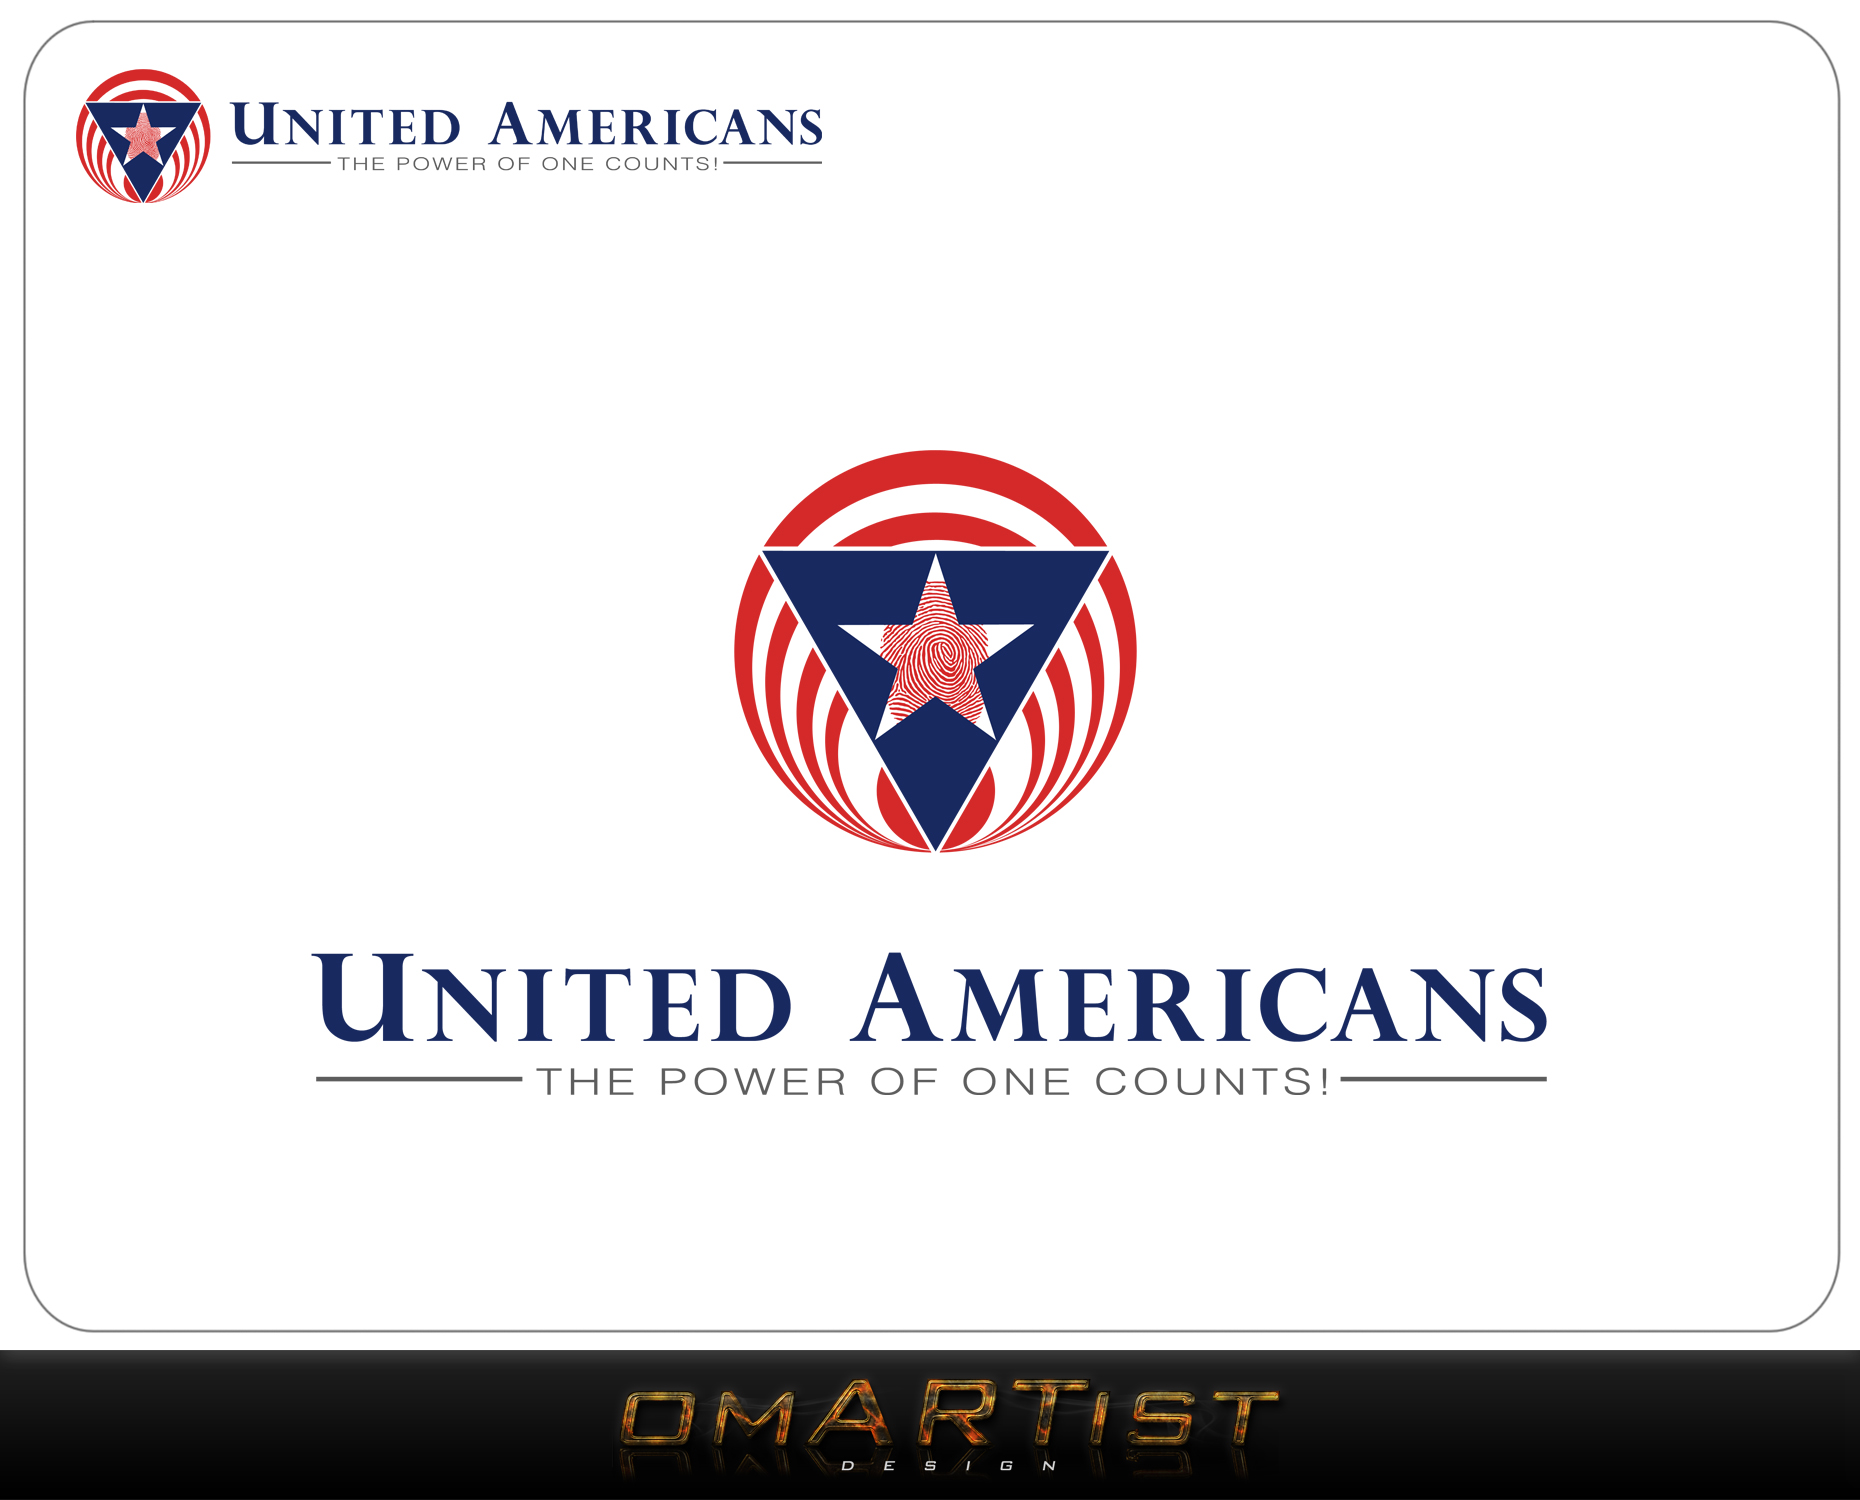 Logo Design by omARTist - Entry No. 107 in the Logo Design Contest Creative Logo Design for United Americans.